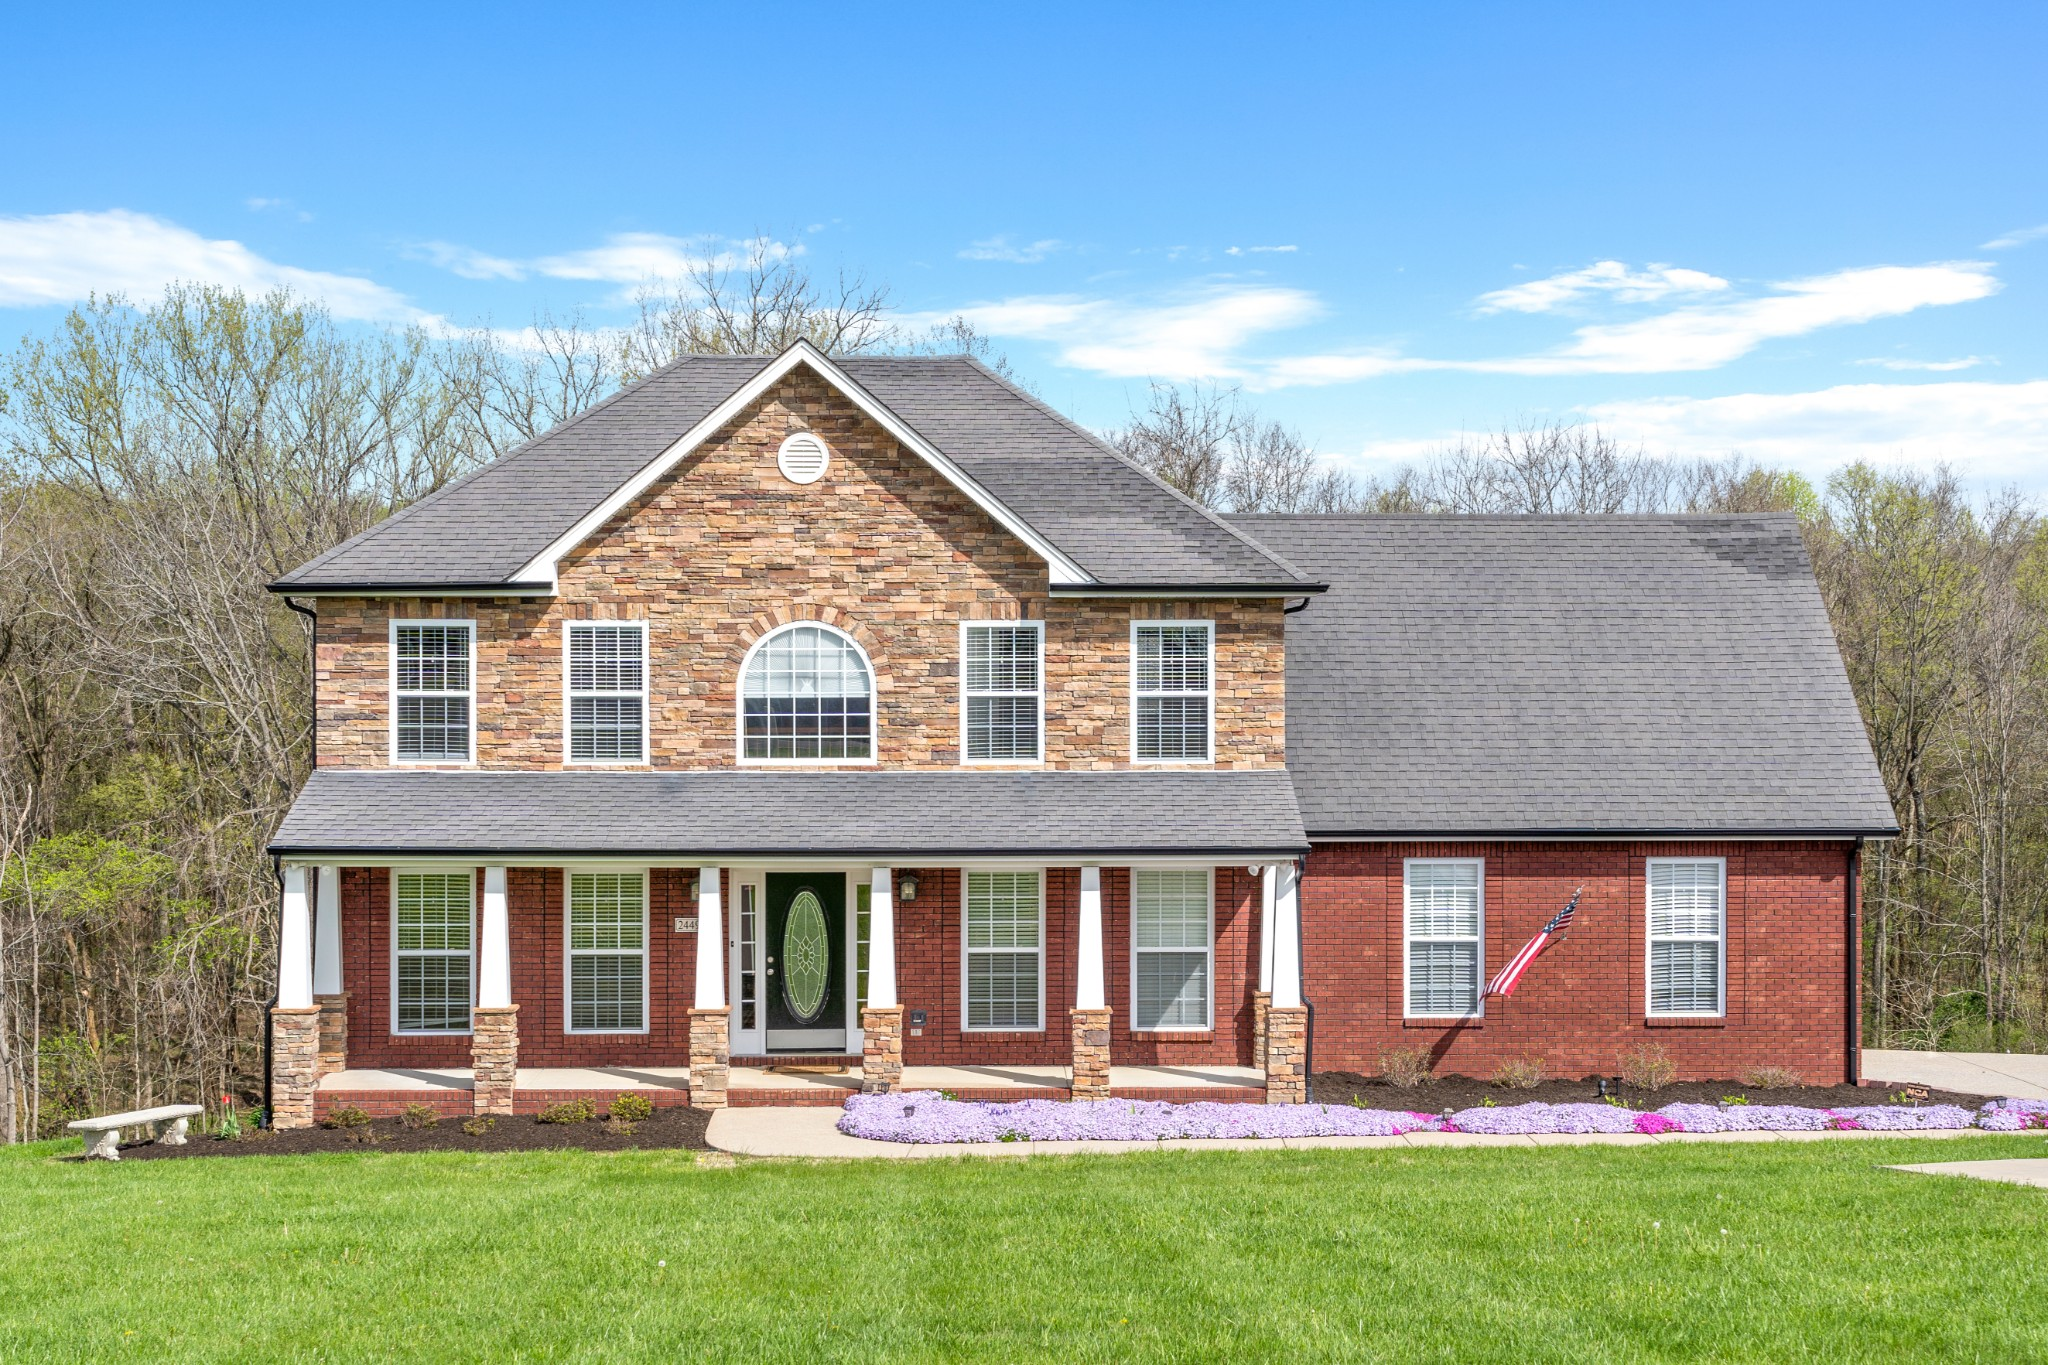 2449 Pleasant View Rd, Pleasant View, TN 37146 - Pleasant View, TN real estate listing